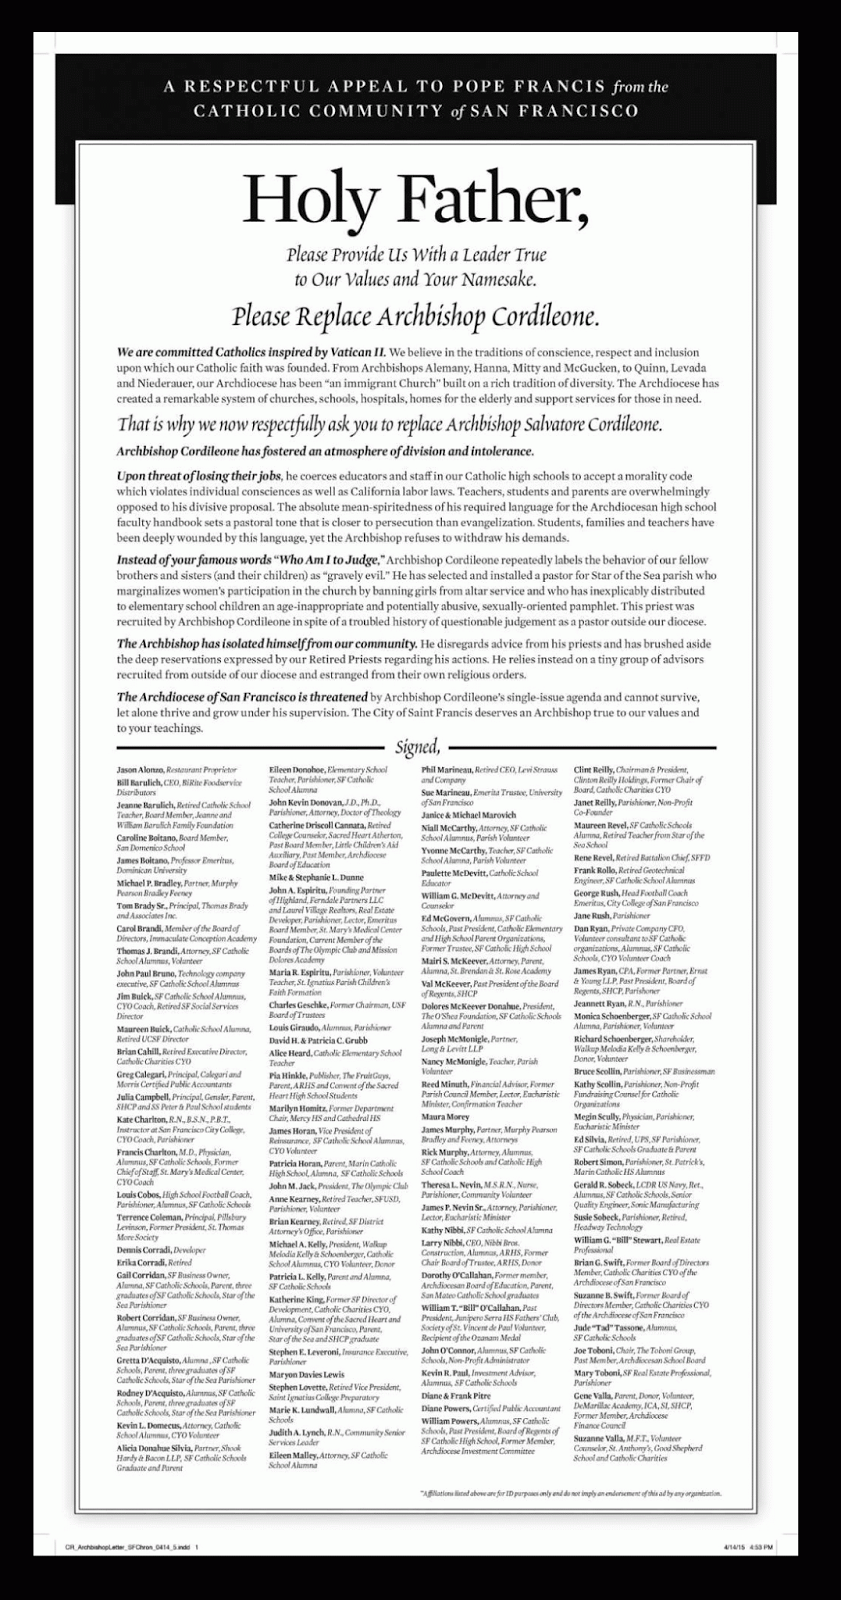 """San Francisco Chronicle Ad 4-15-2015 calling on Pope Francis to replace Archbishop Salvatore Cordileone. It says """"The Archdiocese of San Francisco  is threatened by Archbishop Cordileone's single-issue agenda and cannot survive, let alone thrive and grow under his supervision. The city of Saint Francis deserves an Archbishop true to our values and to your teachings."""""""